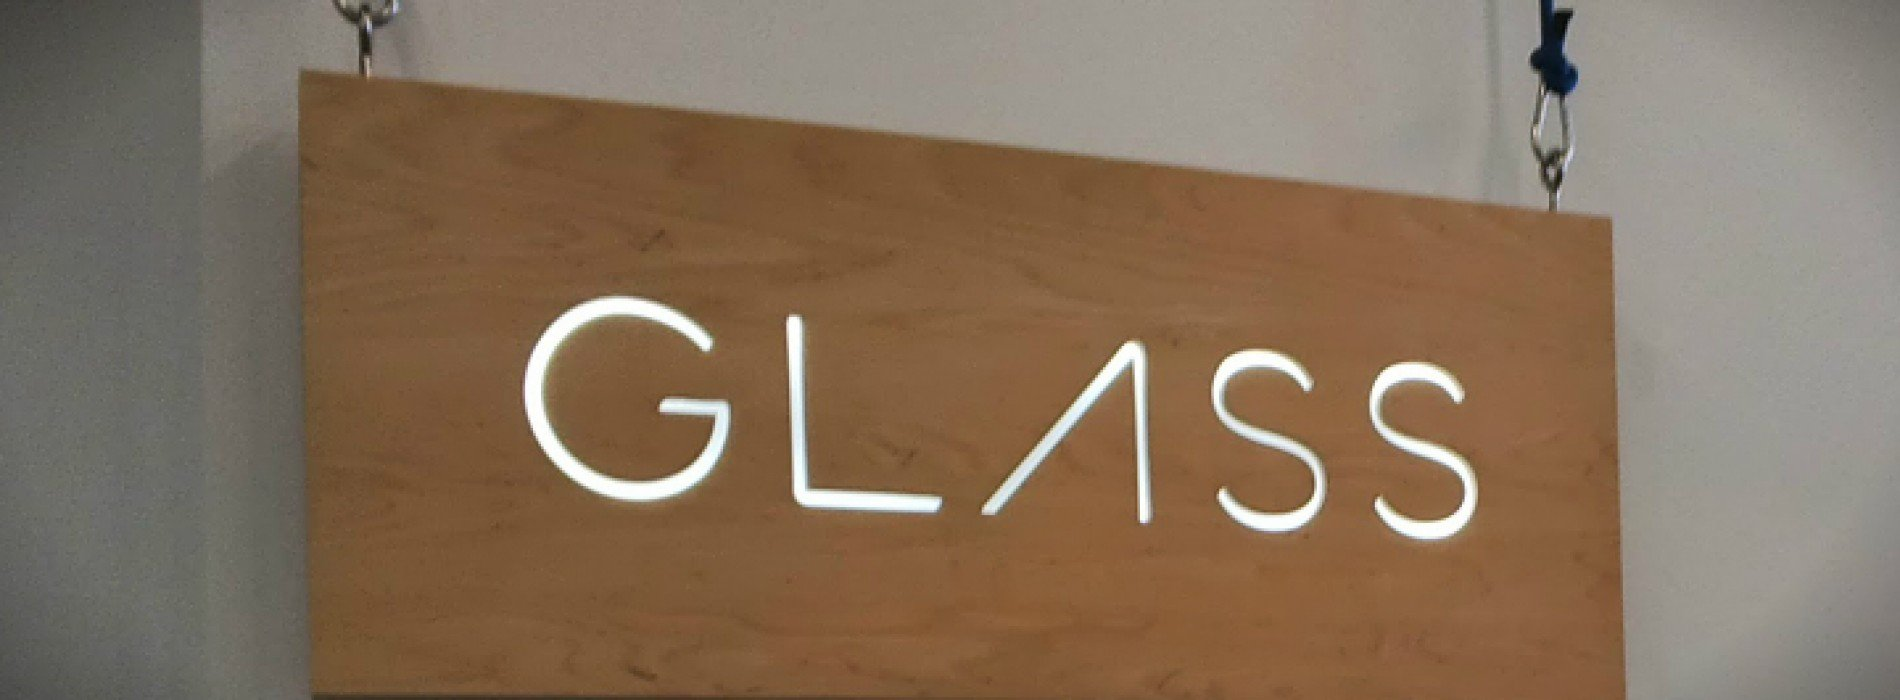 Google announces Glassware Review Process for third-party developers